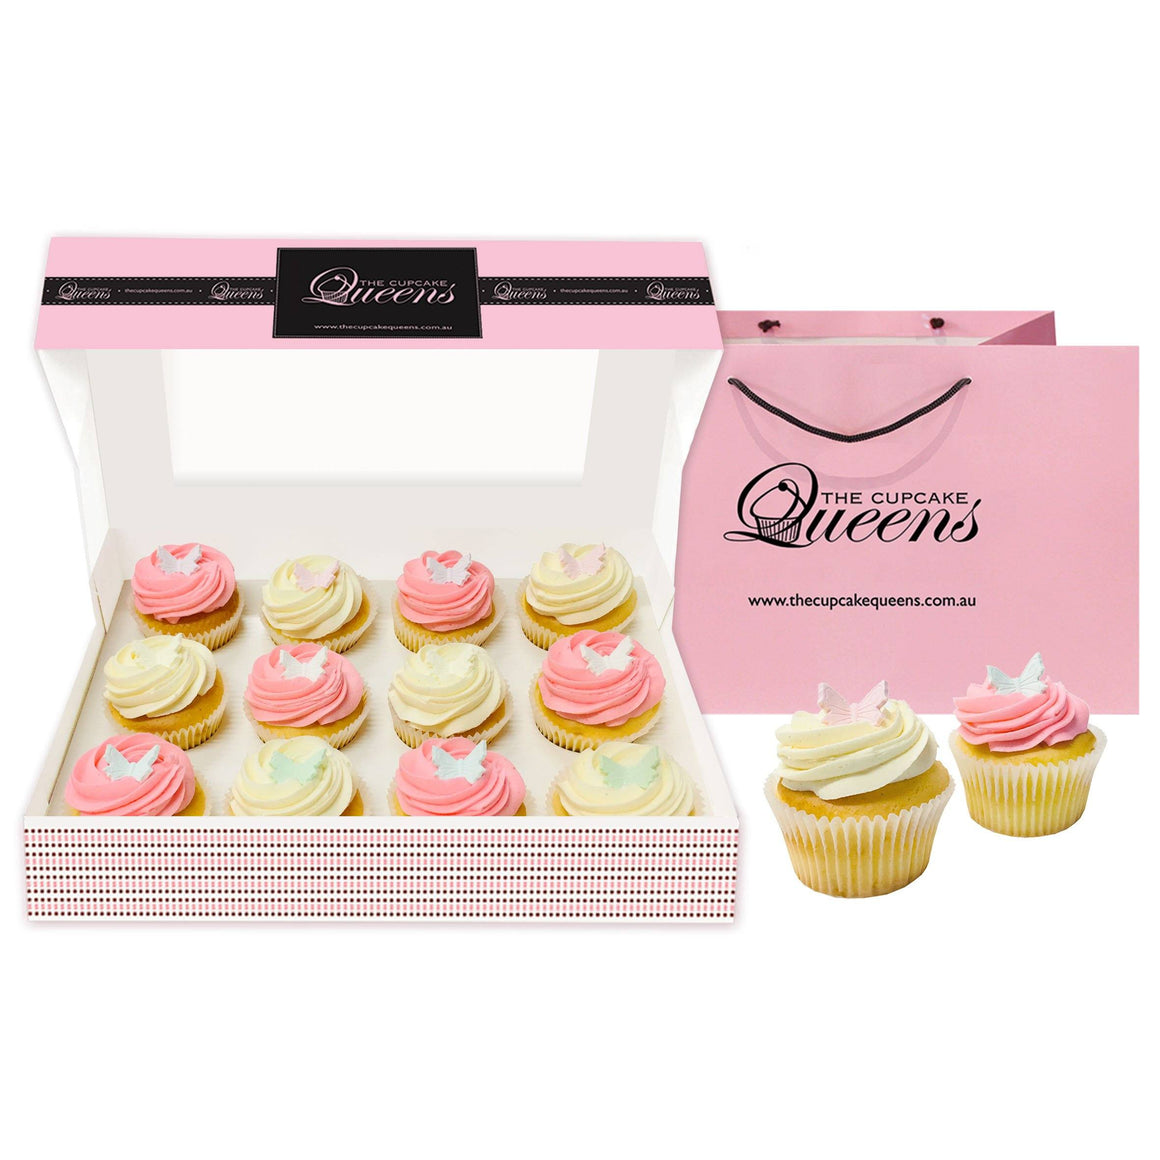 Pink Vanilla Butterfly Gift Box Cupcakes The Cupcake Queens